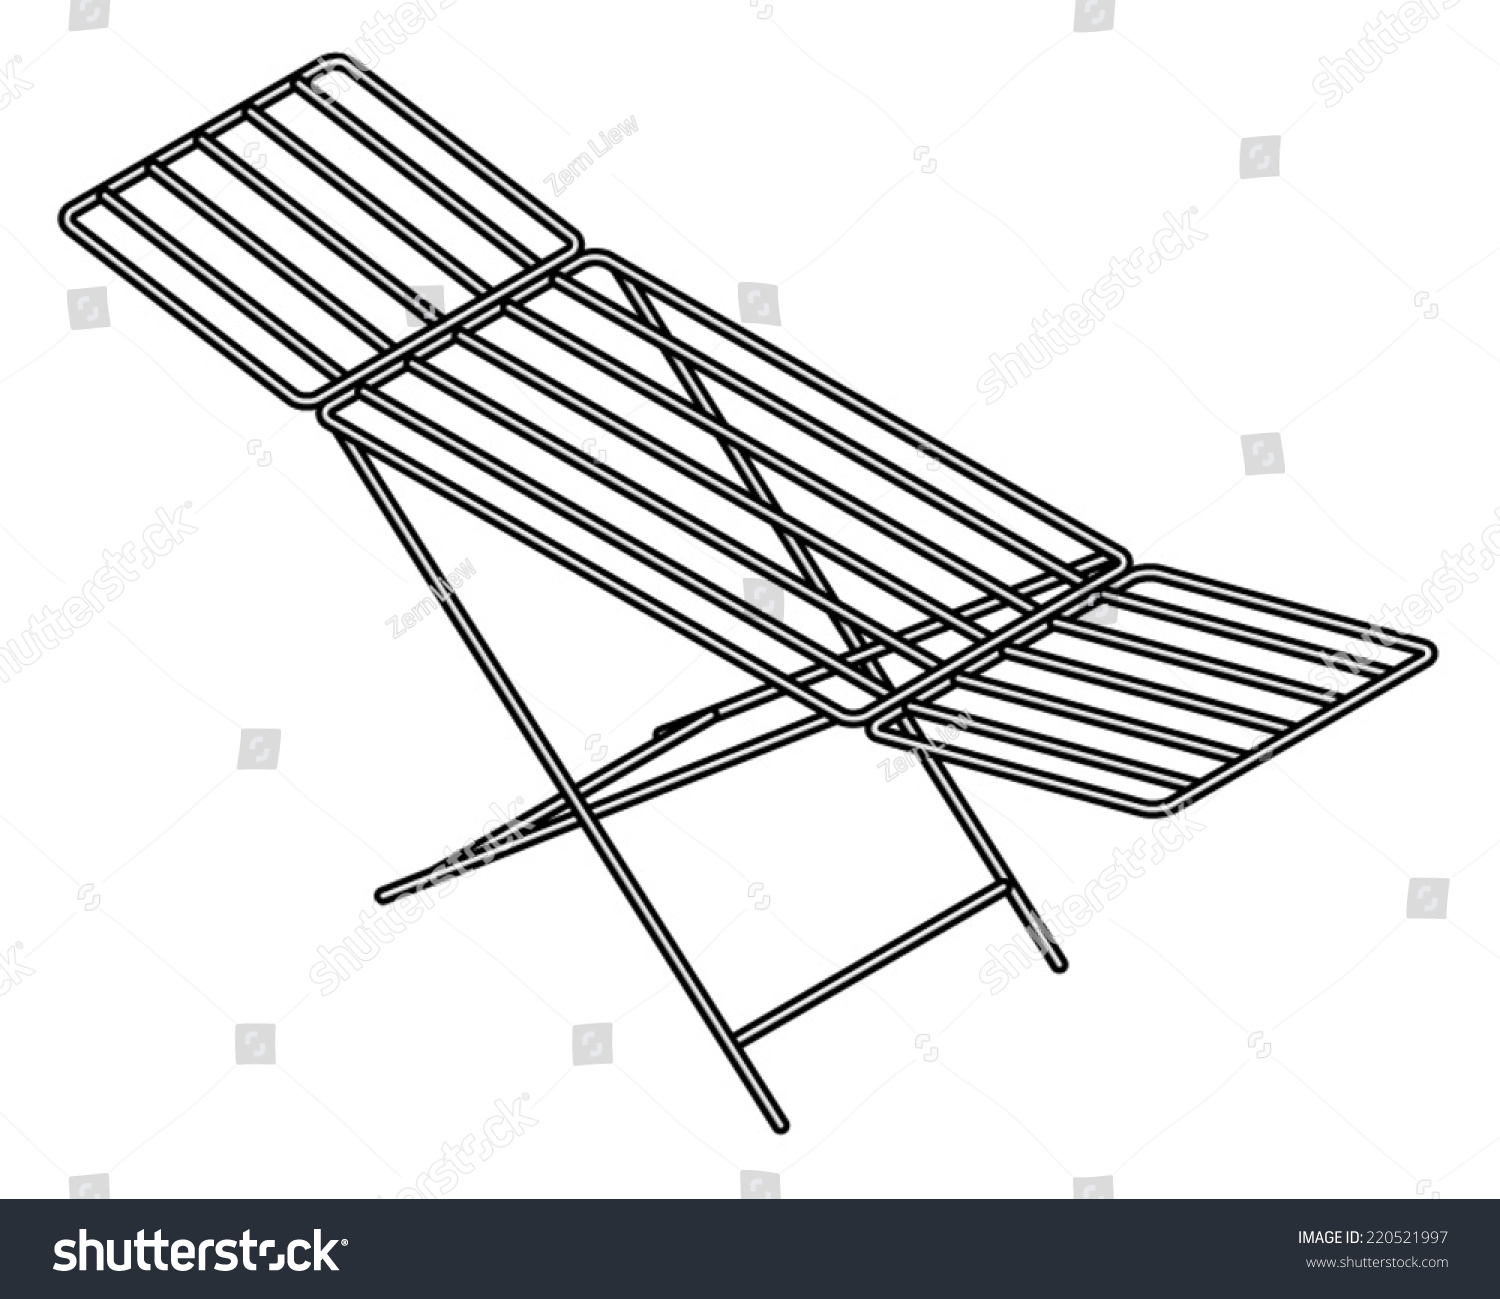 Folding Wire Clothes Horse Drying Rack Stock Vector (2018) 220521997 ...